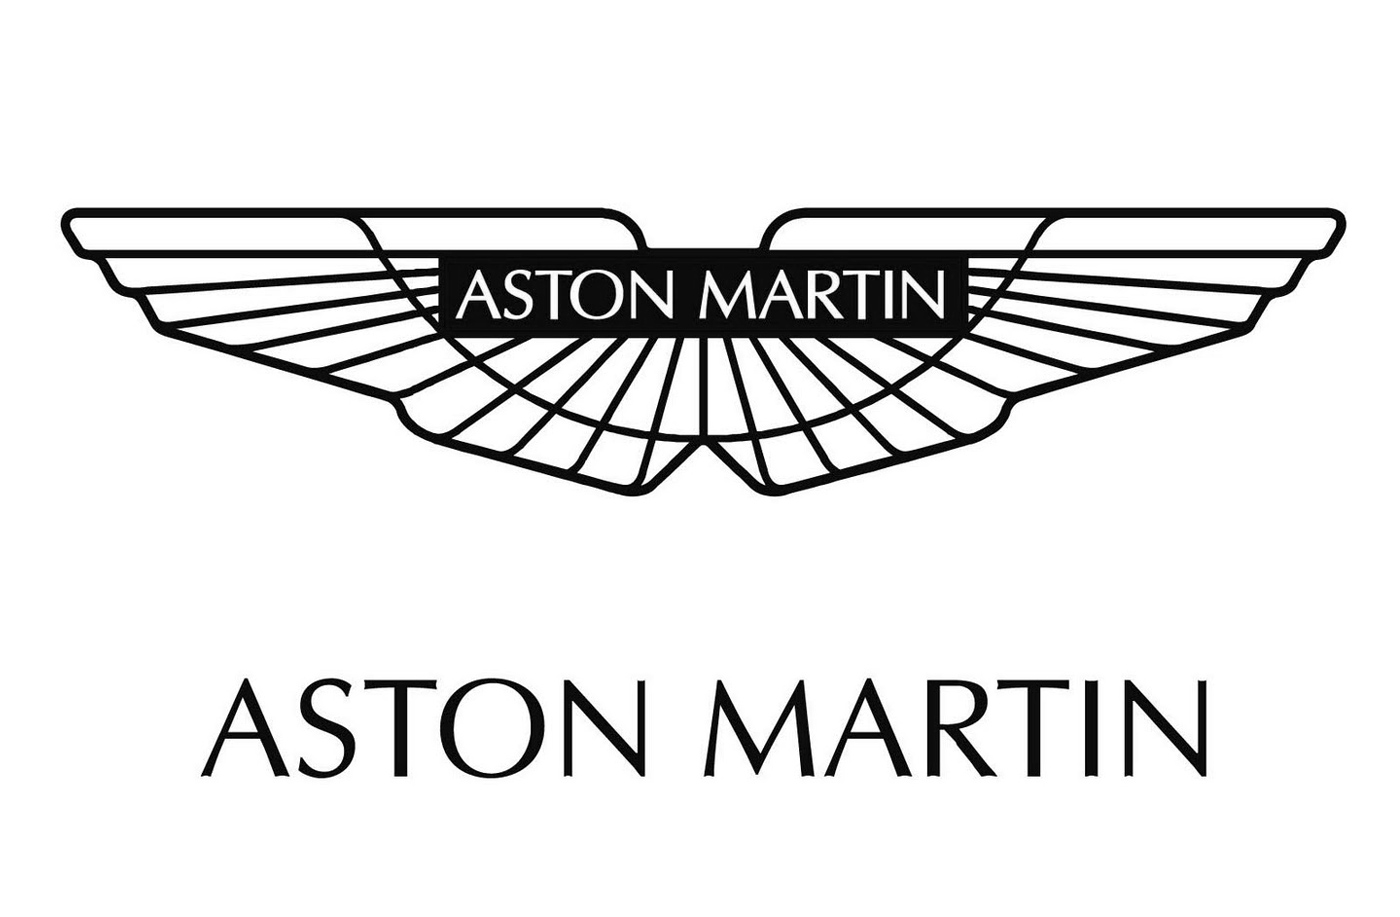 Large Aston Martin Car Logo Zero To 60 Times